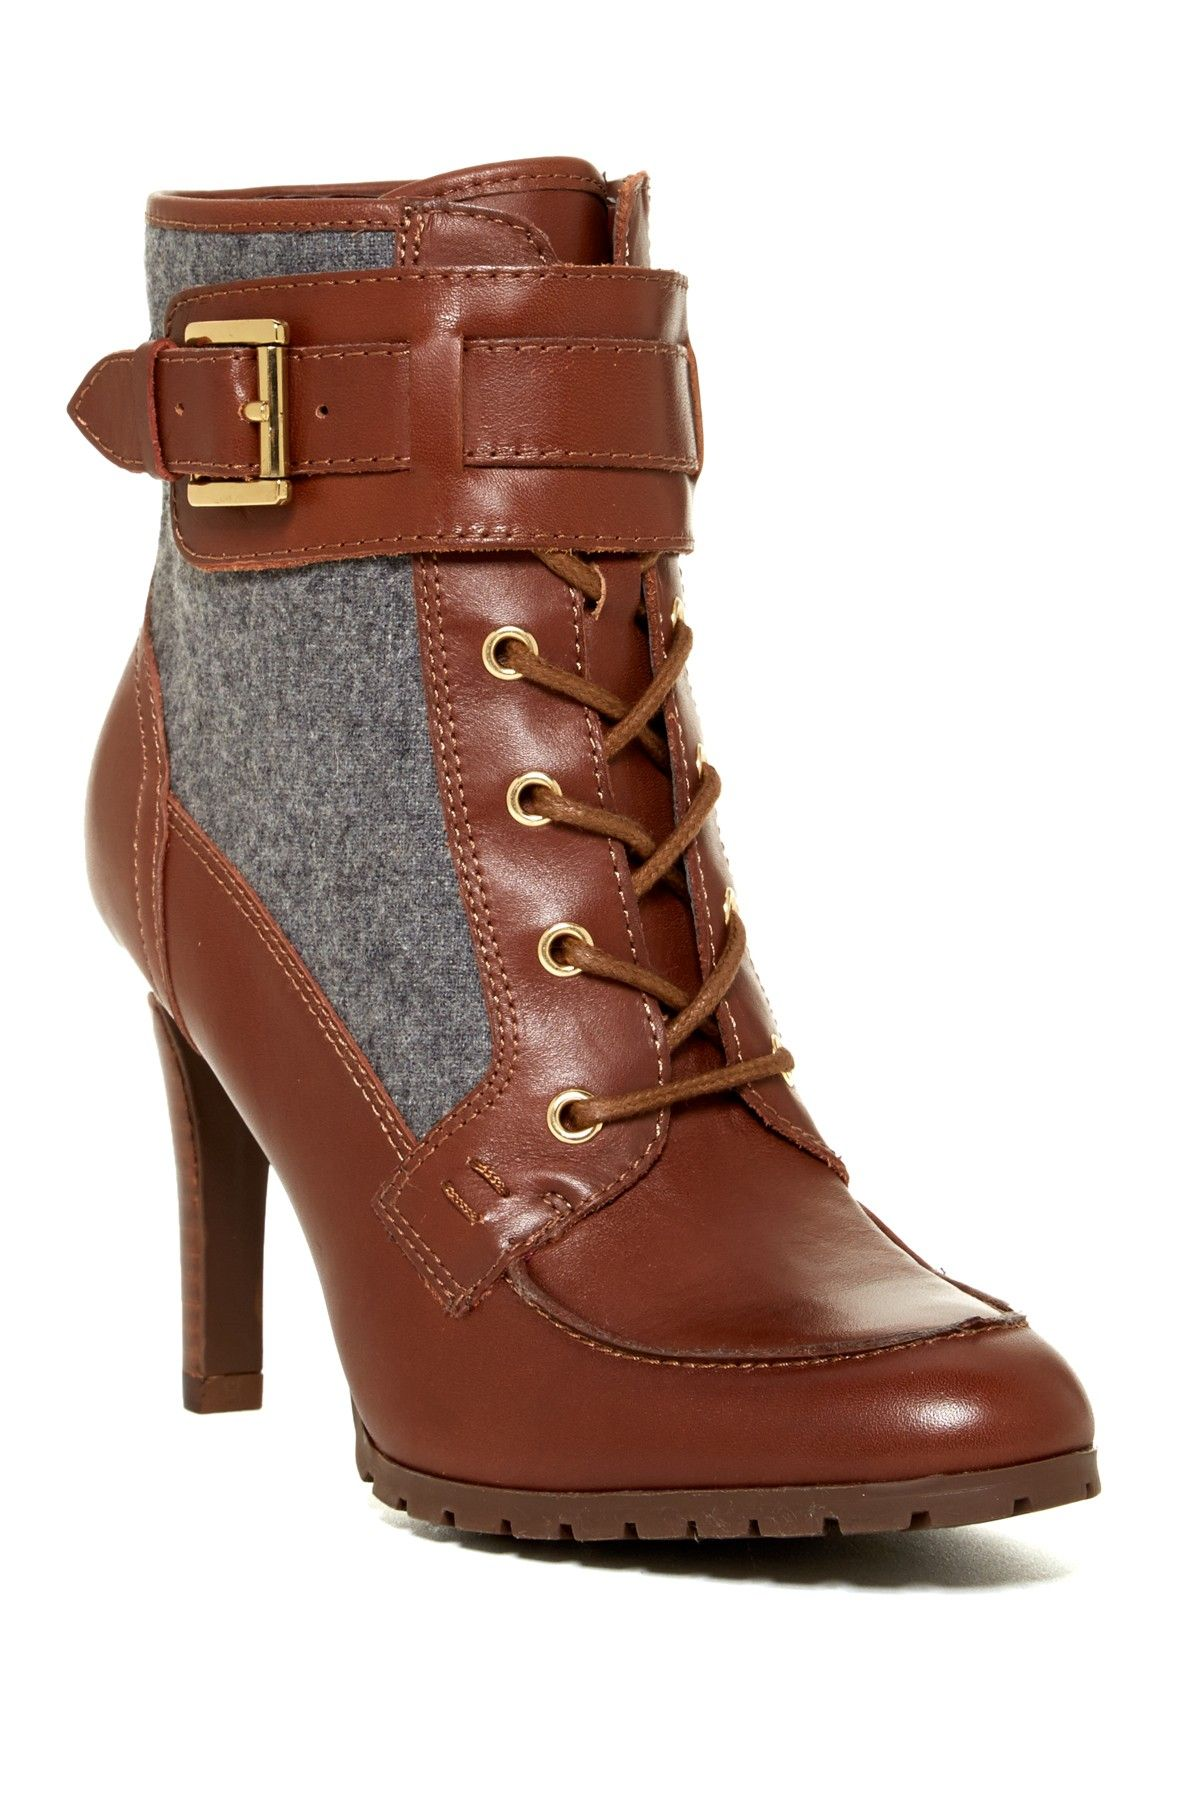 On Hautelook Tommy Hilfiger Lucinda Lace Up Bootie Boogie Shoes Me Too Shoes Boots